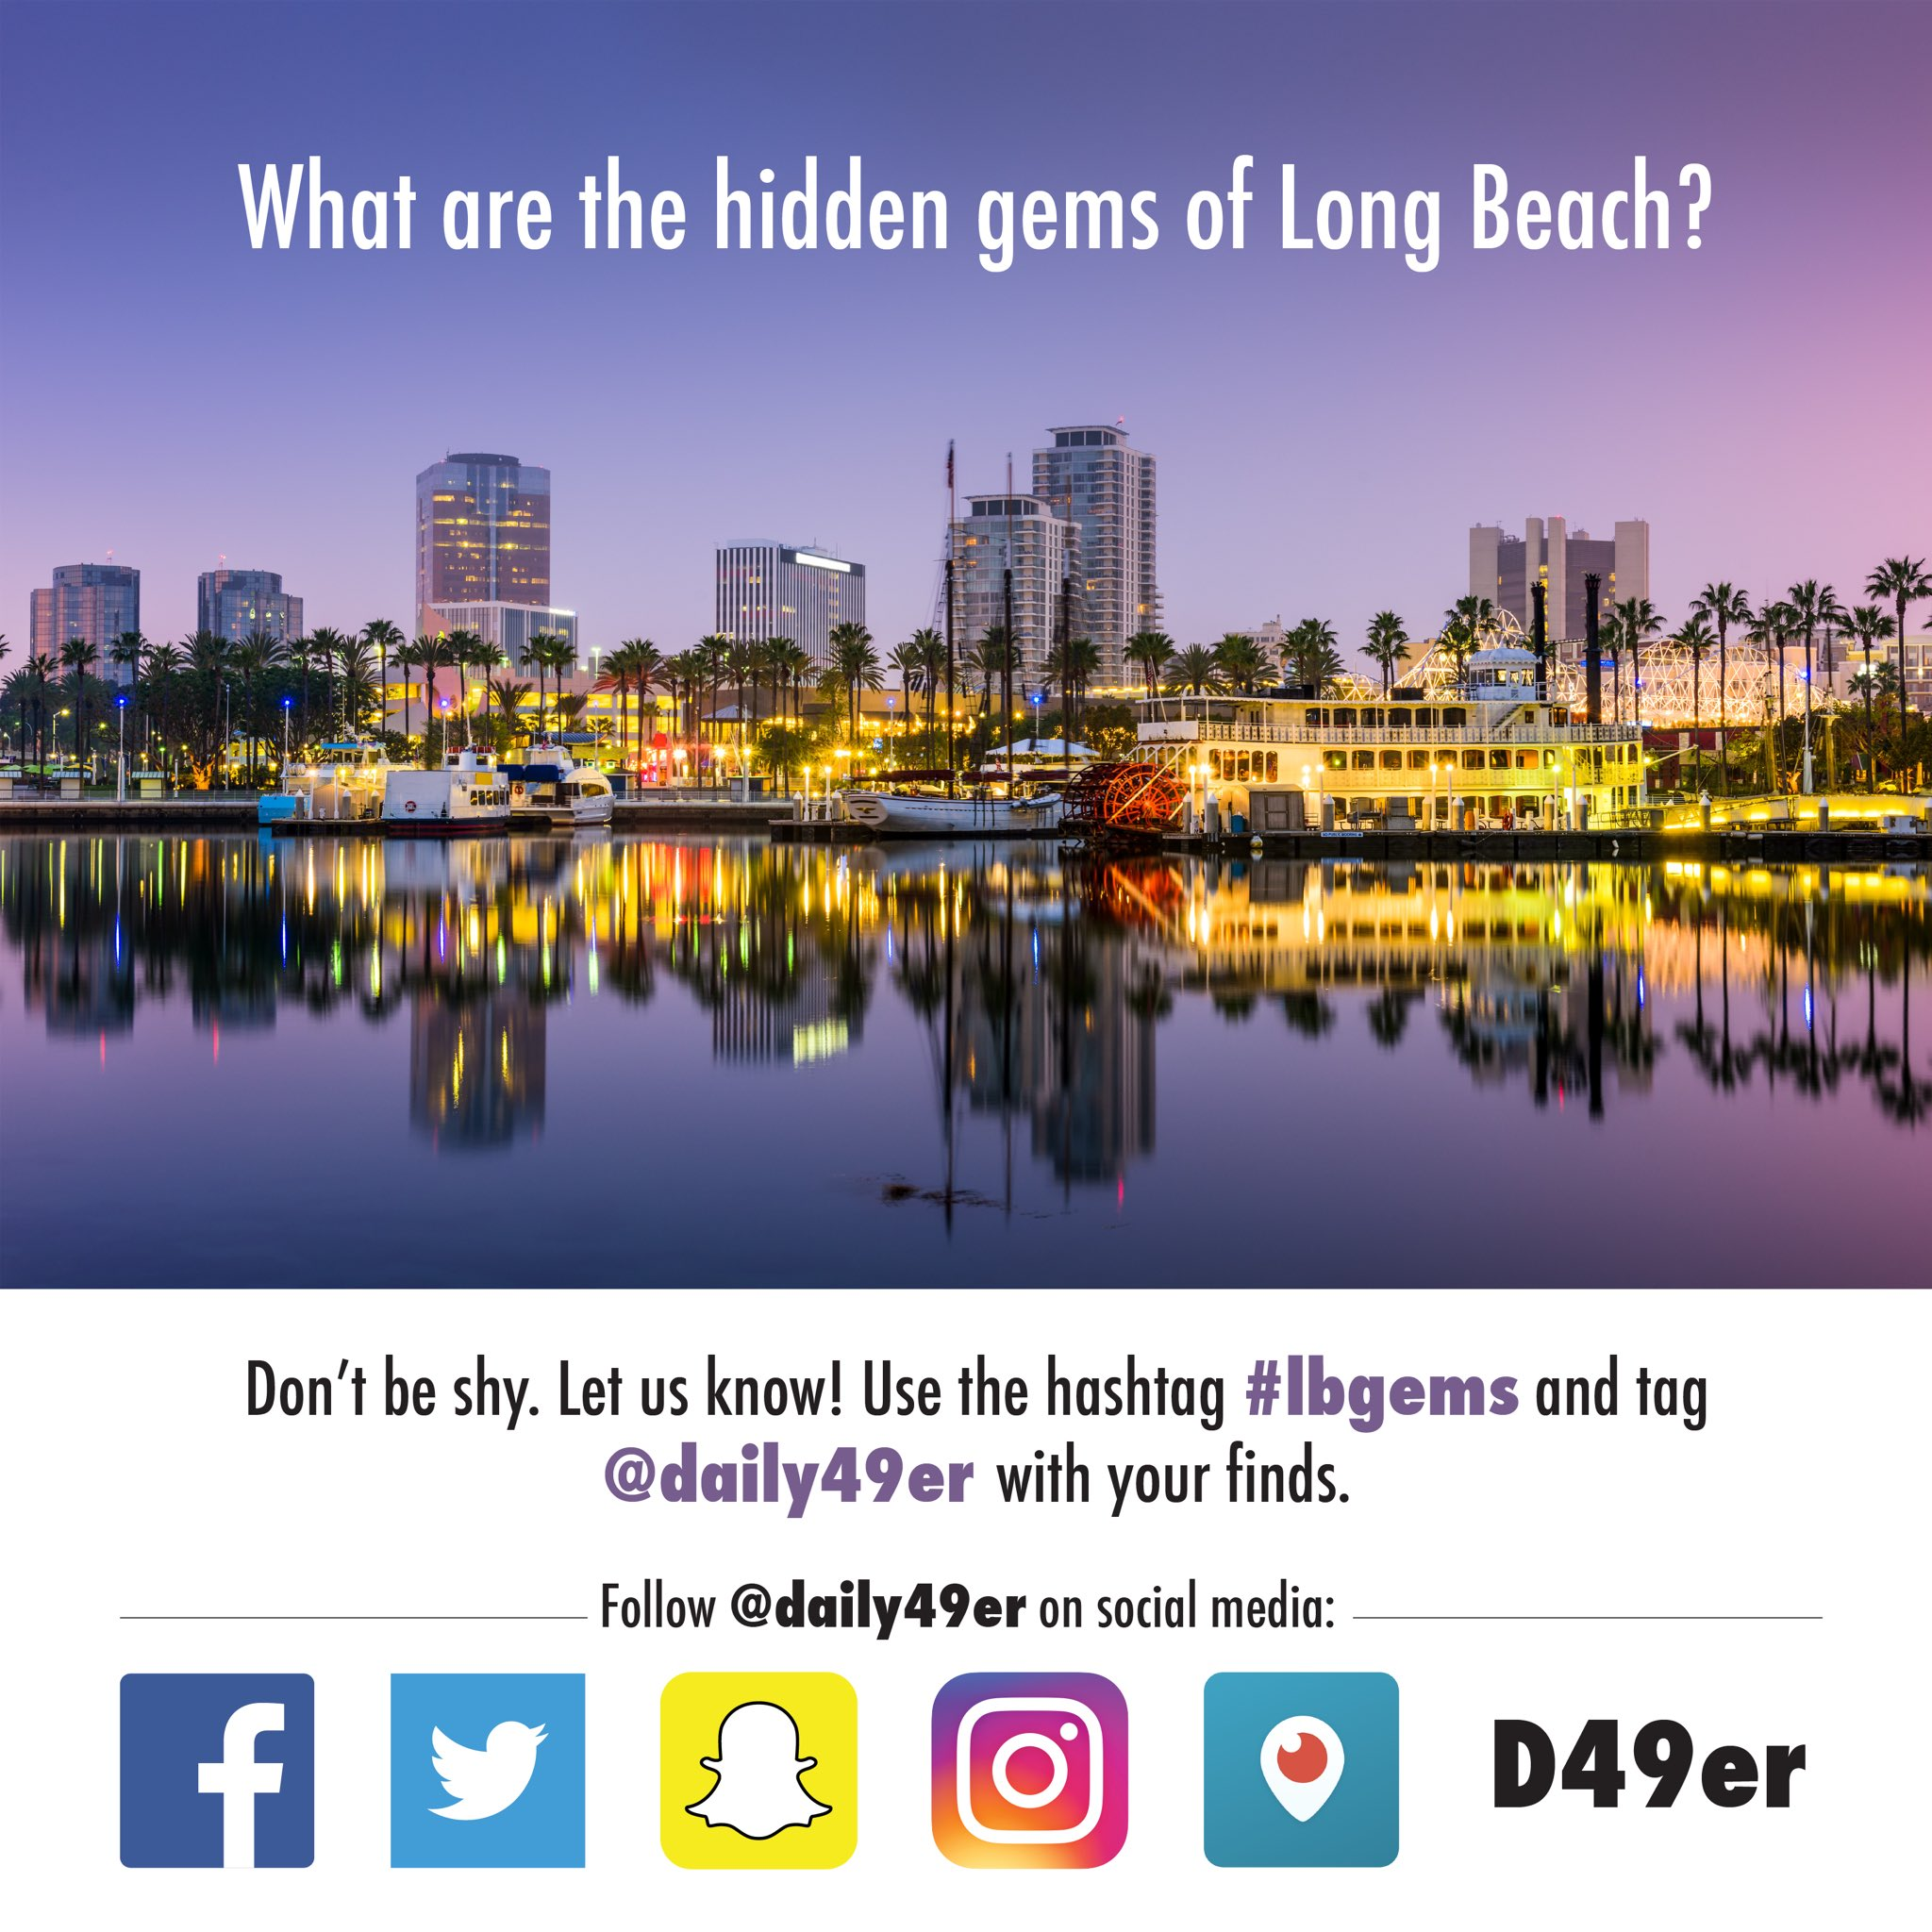 Hey 49ers!  Tell us @daily49er what restaurants, shops and museums in Long Beach deserve more attention! #LBGems #LongBeach #49erNow https://t.co/bZNjbJod2h